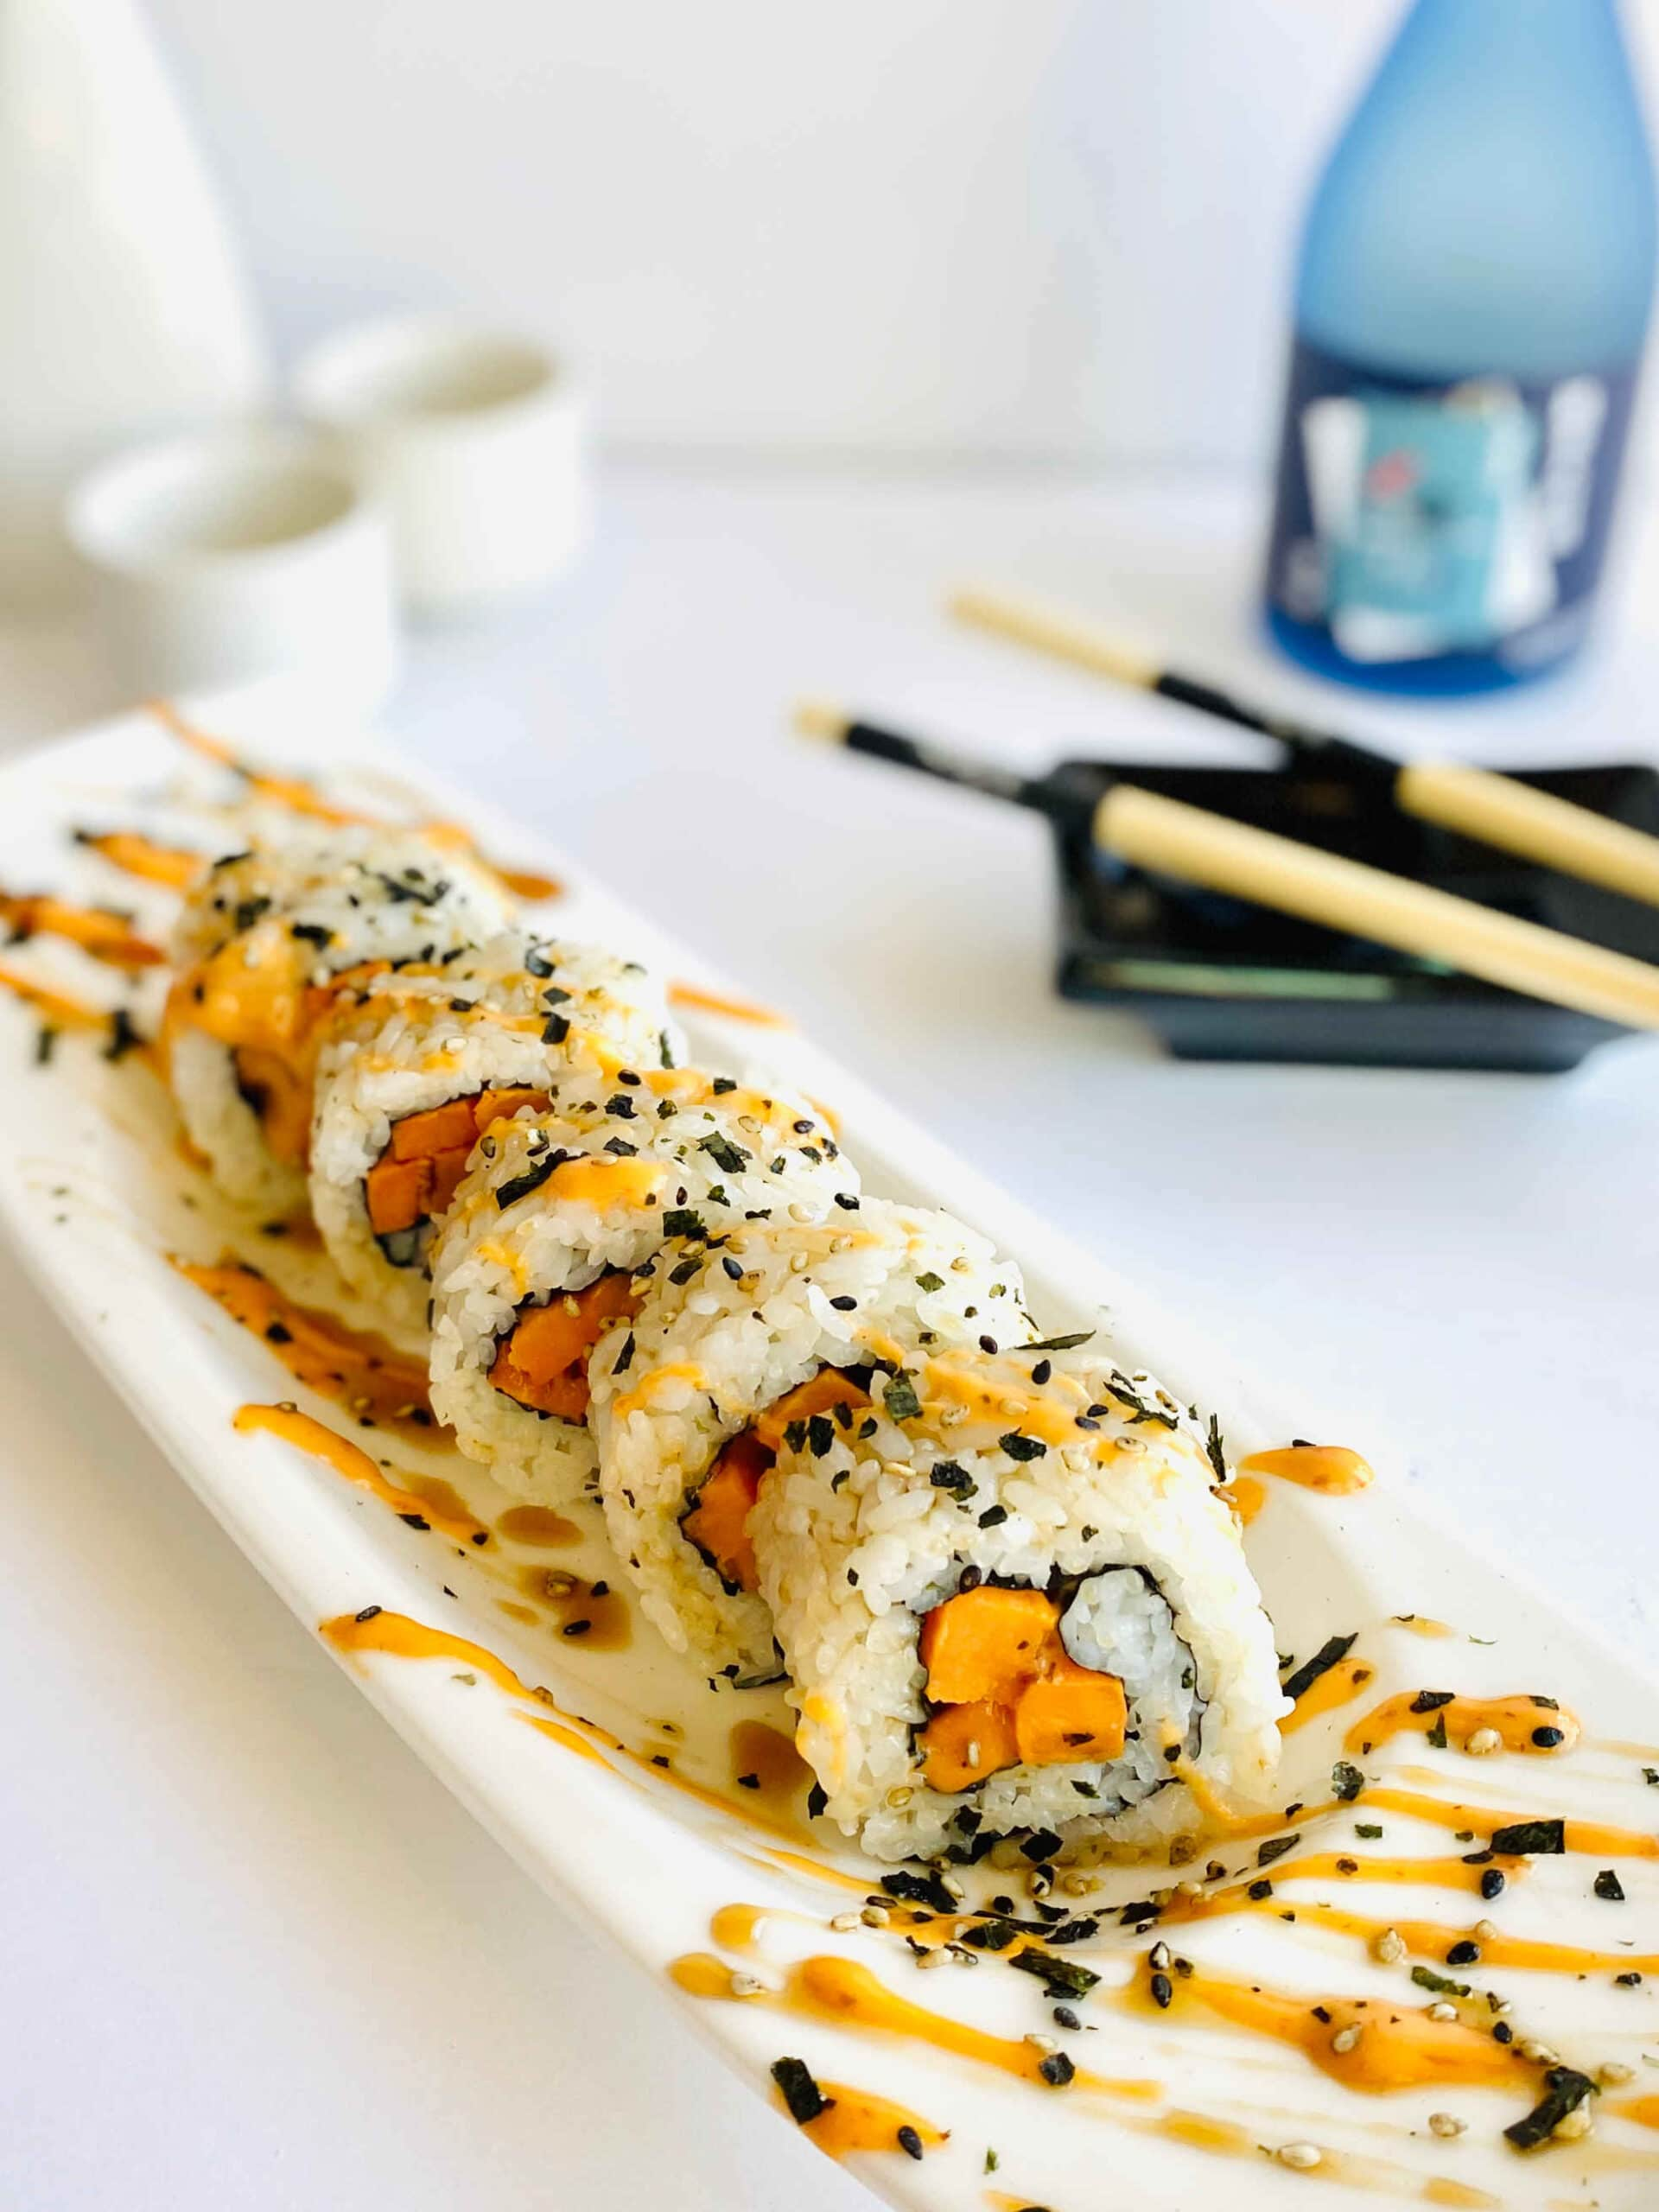 sweet potato roll sushi on plate with sake bottle and chopsticks in background